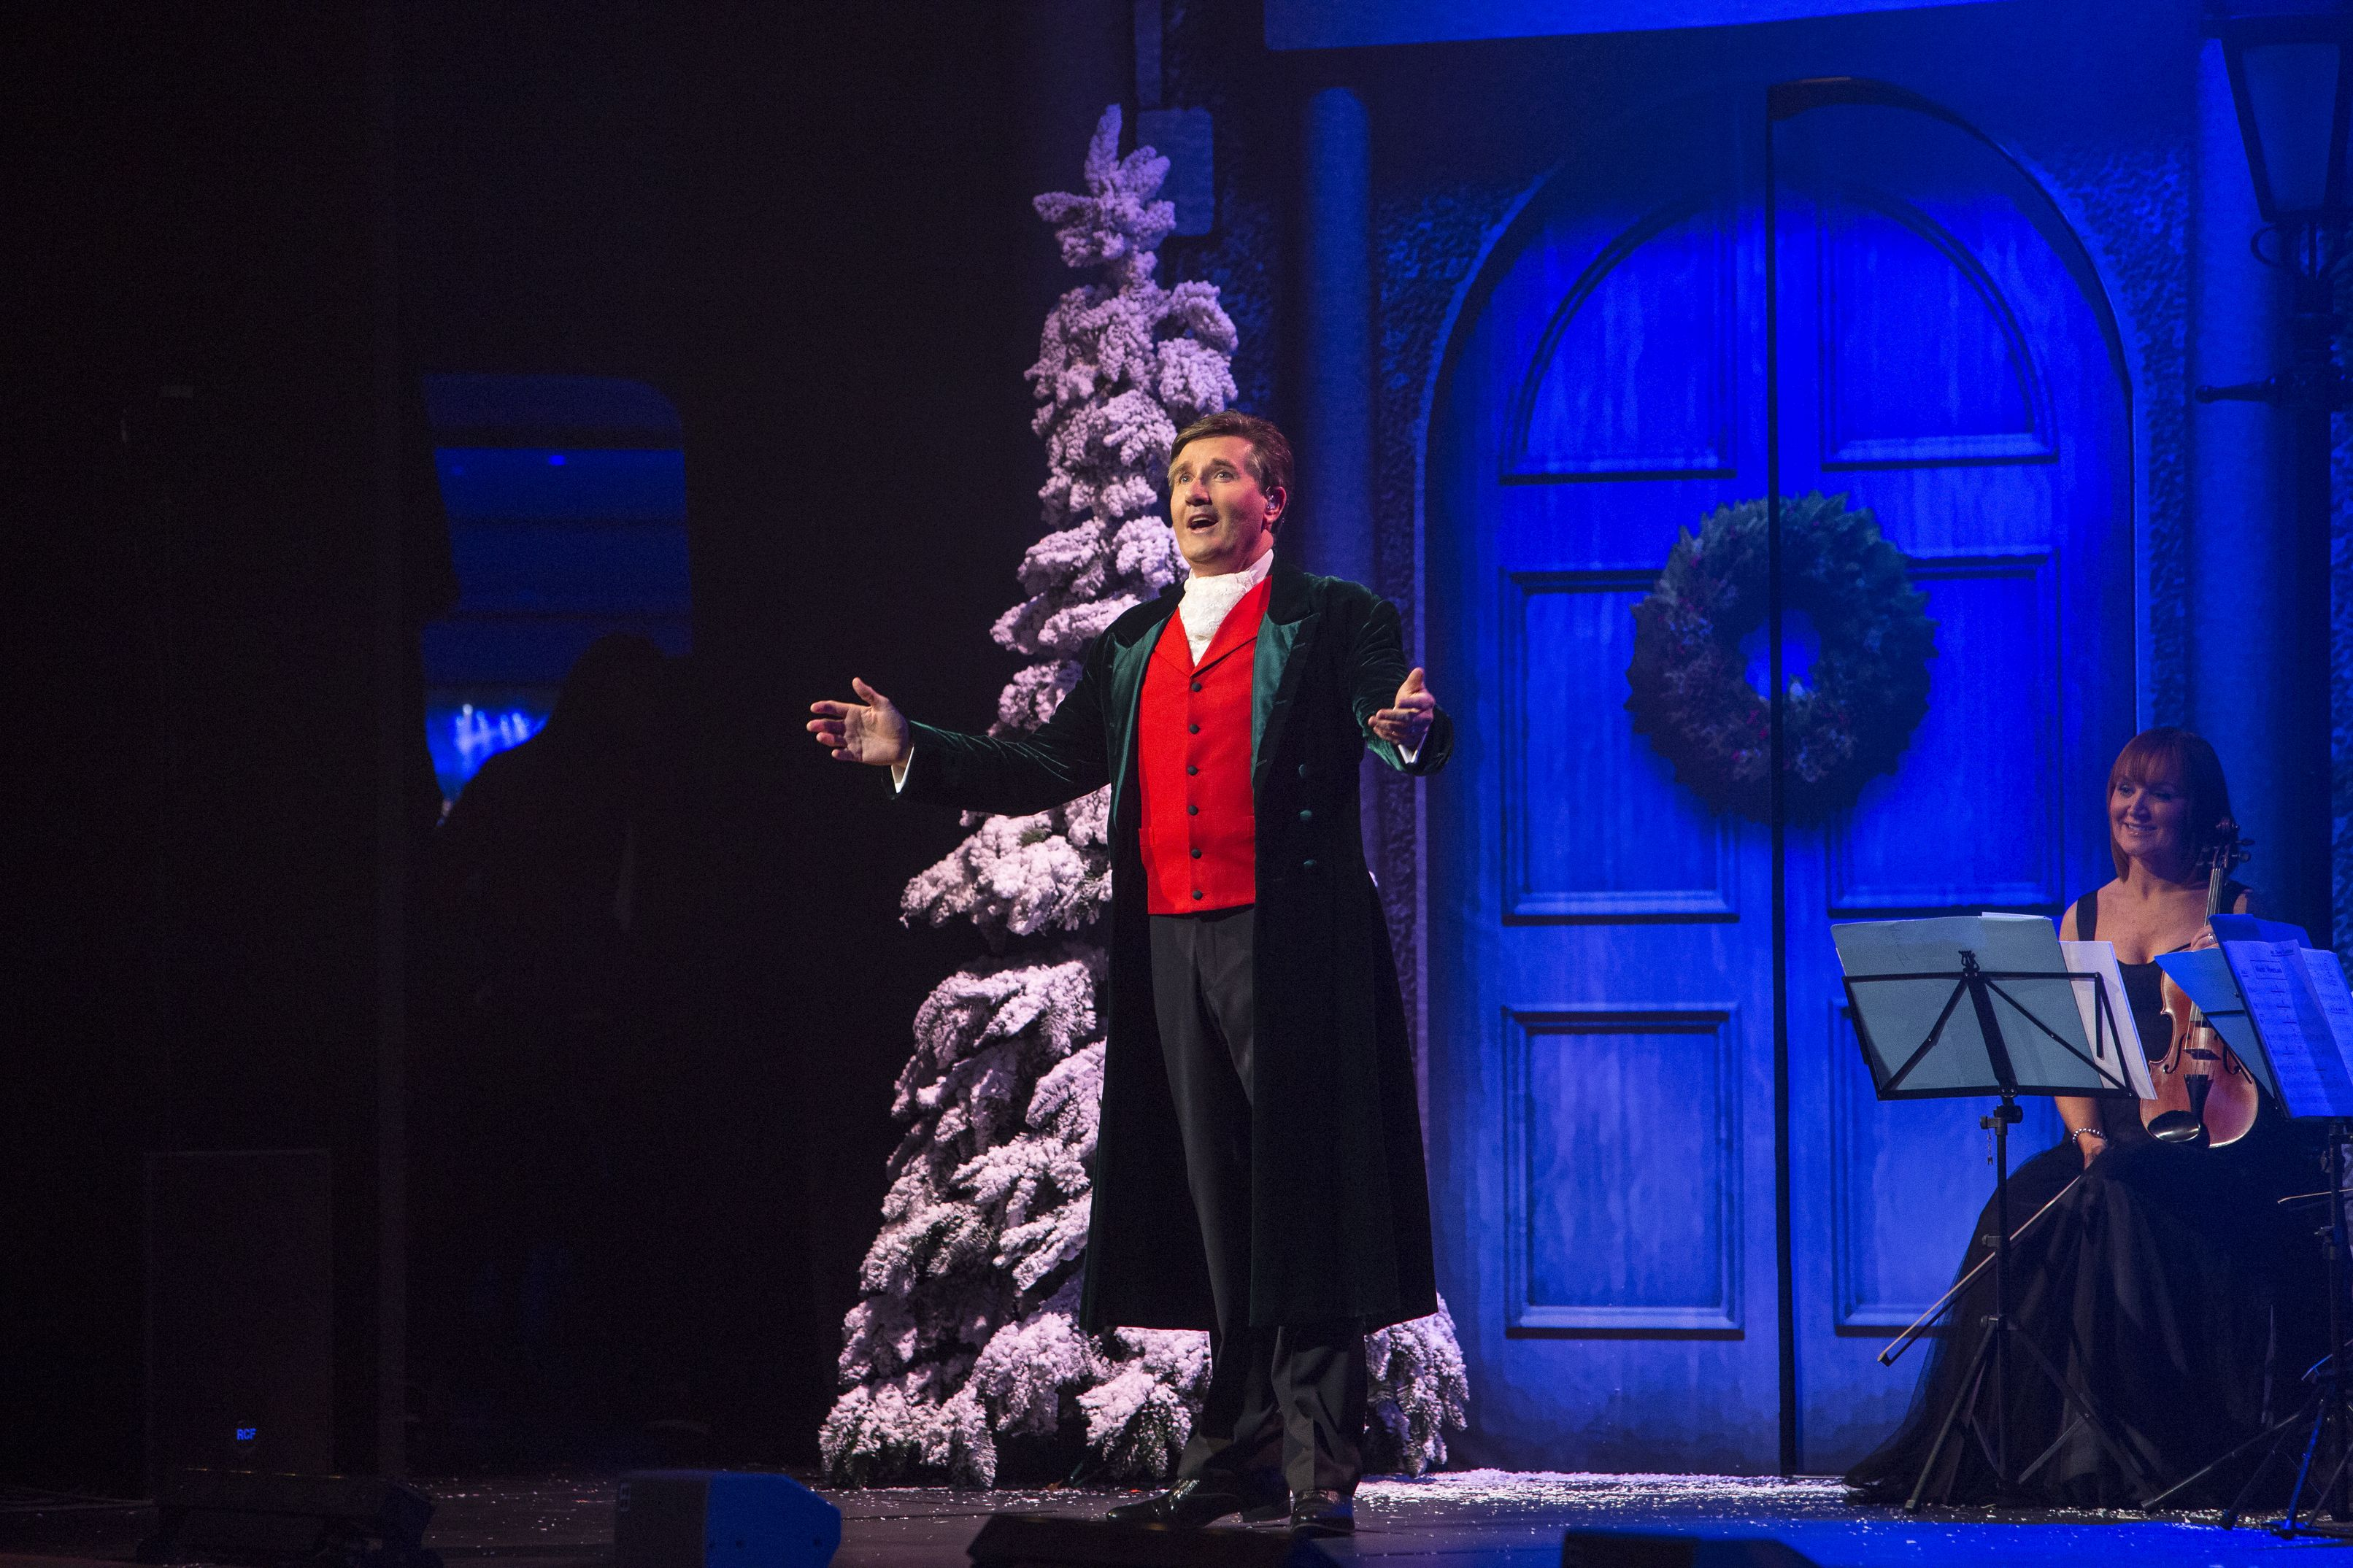 """Join Daniel O'Donnell and special guests for a winter wonderland of yuletide carols and seasonal favorites. """"Christmas With Daniel O'Donnell"""" premieres 7 p.m. Tuesday, Dec. 5 on WPT."""